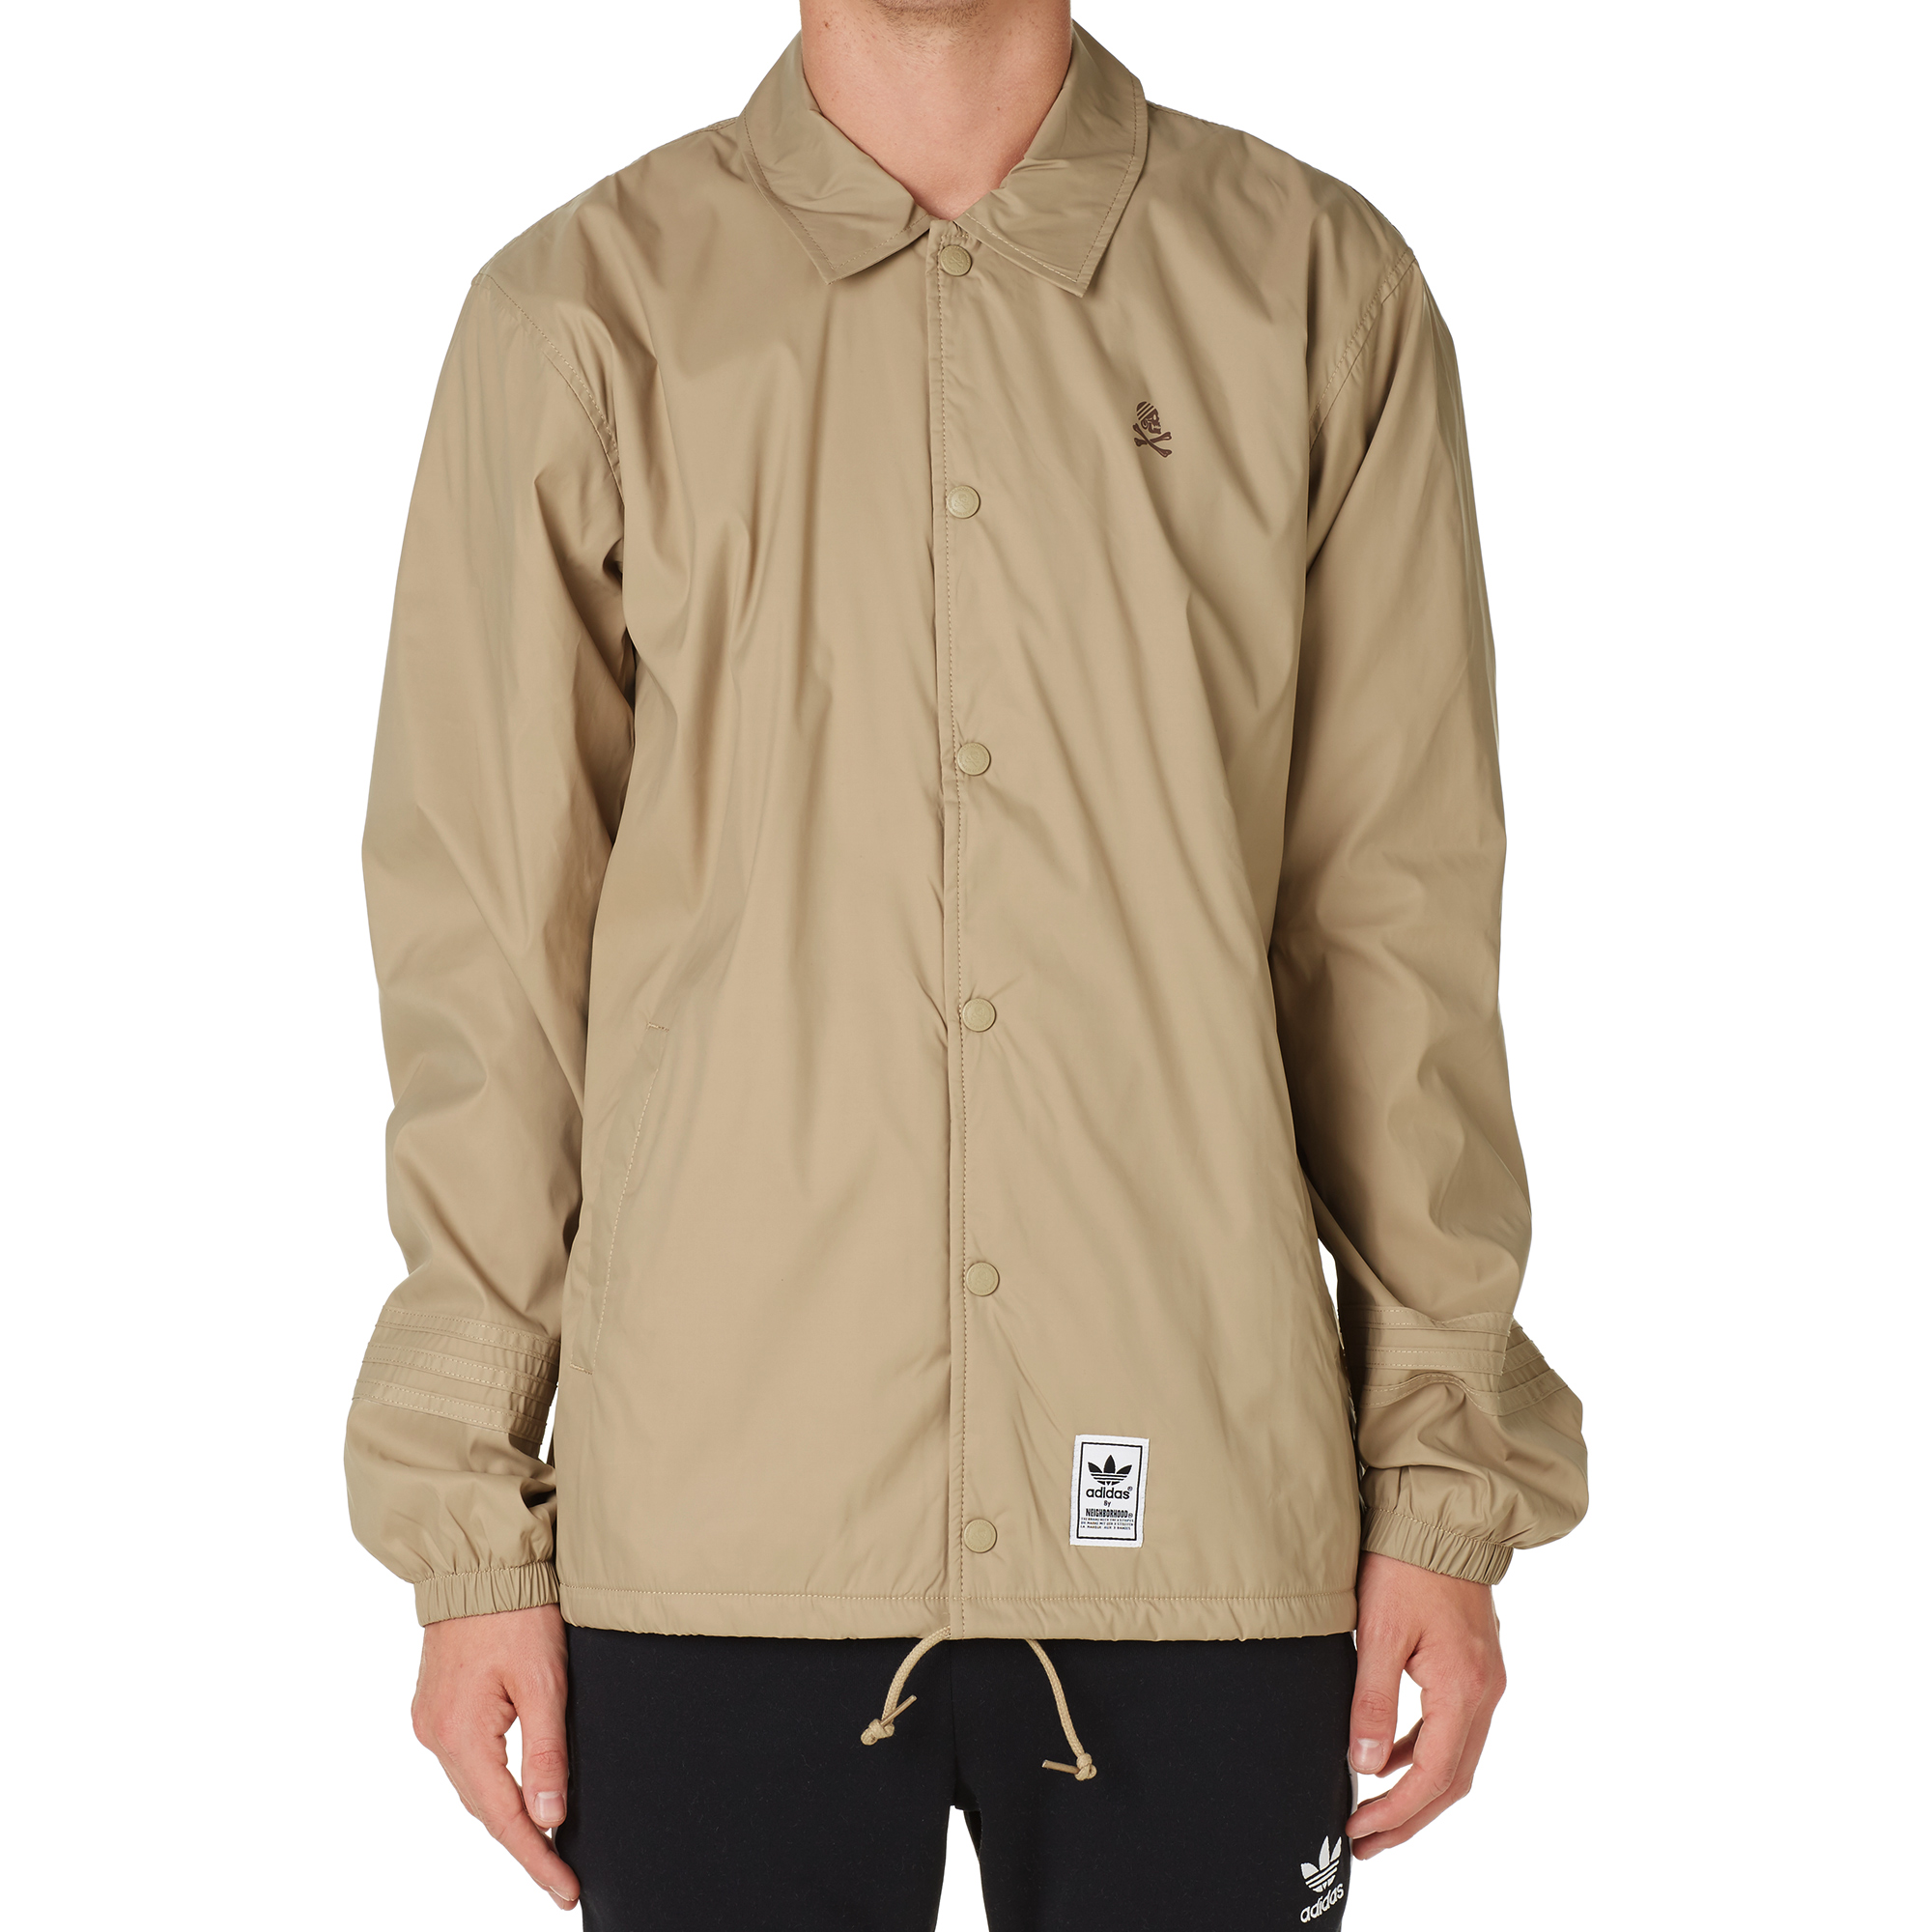 Adidas x neighborhood coach jacket hemp for Coach jacket